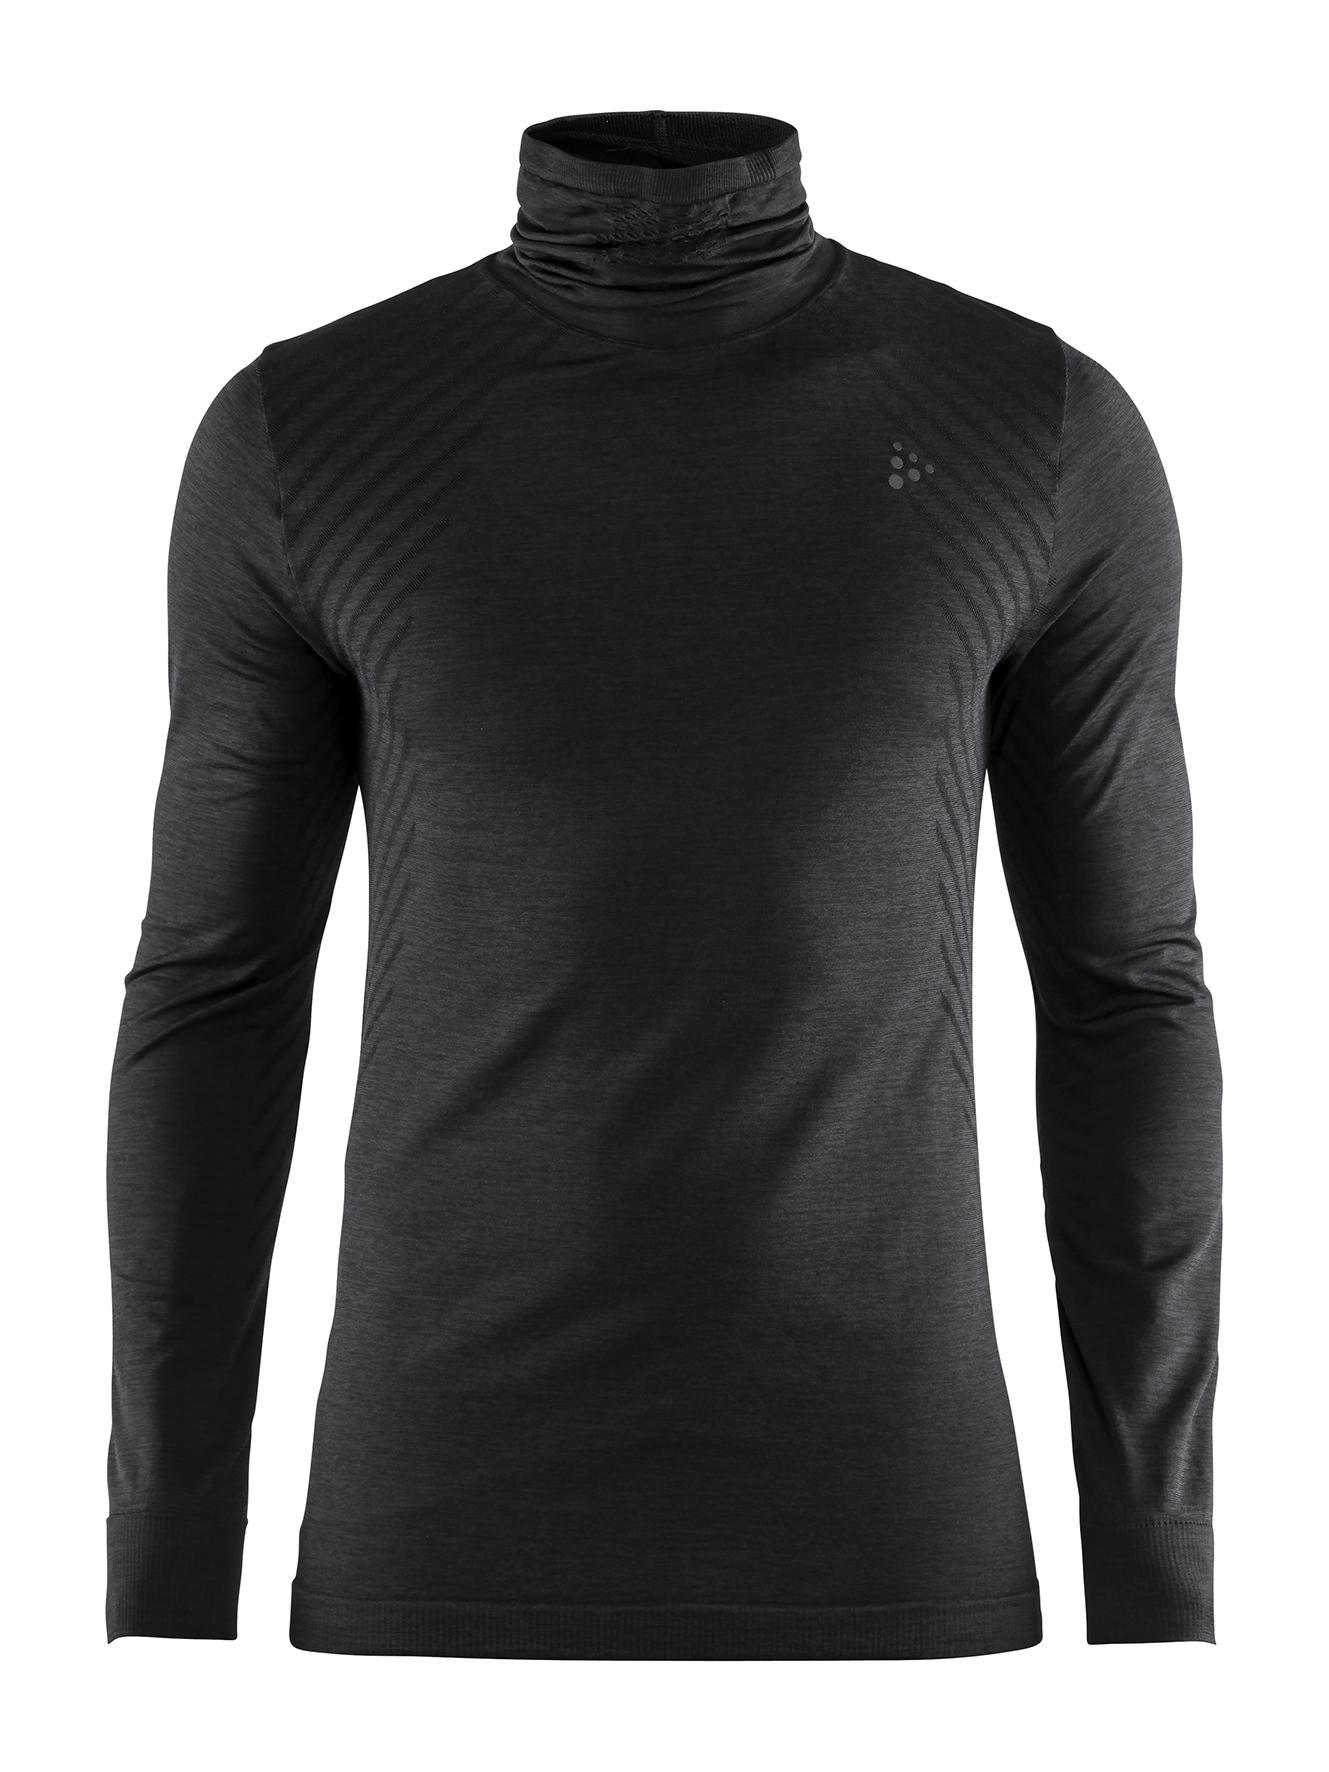 Fuseknit Comfort Turtleneck Man S (B99000) -> /media/download/1906599_m_99000.jpg